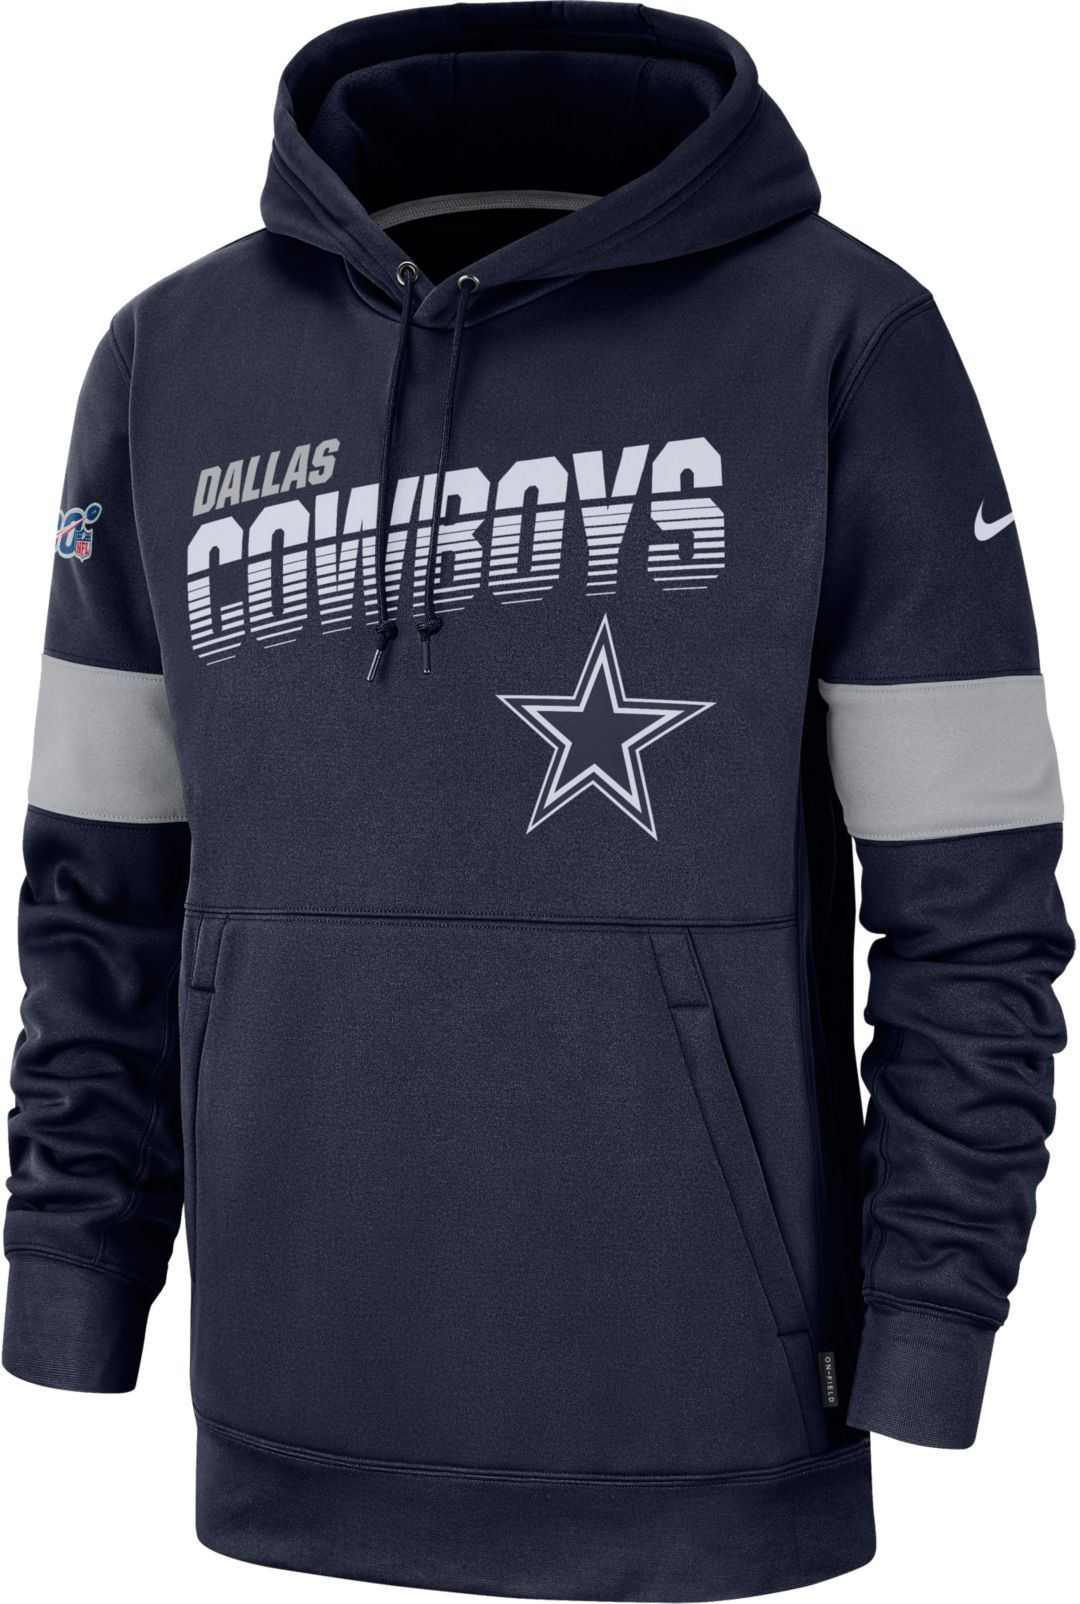 promo code b8eb9 66068 Nike Men's Dallas Cowboys 100th Sideline Therma-FIT Navy Pullover Hoodie